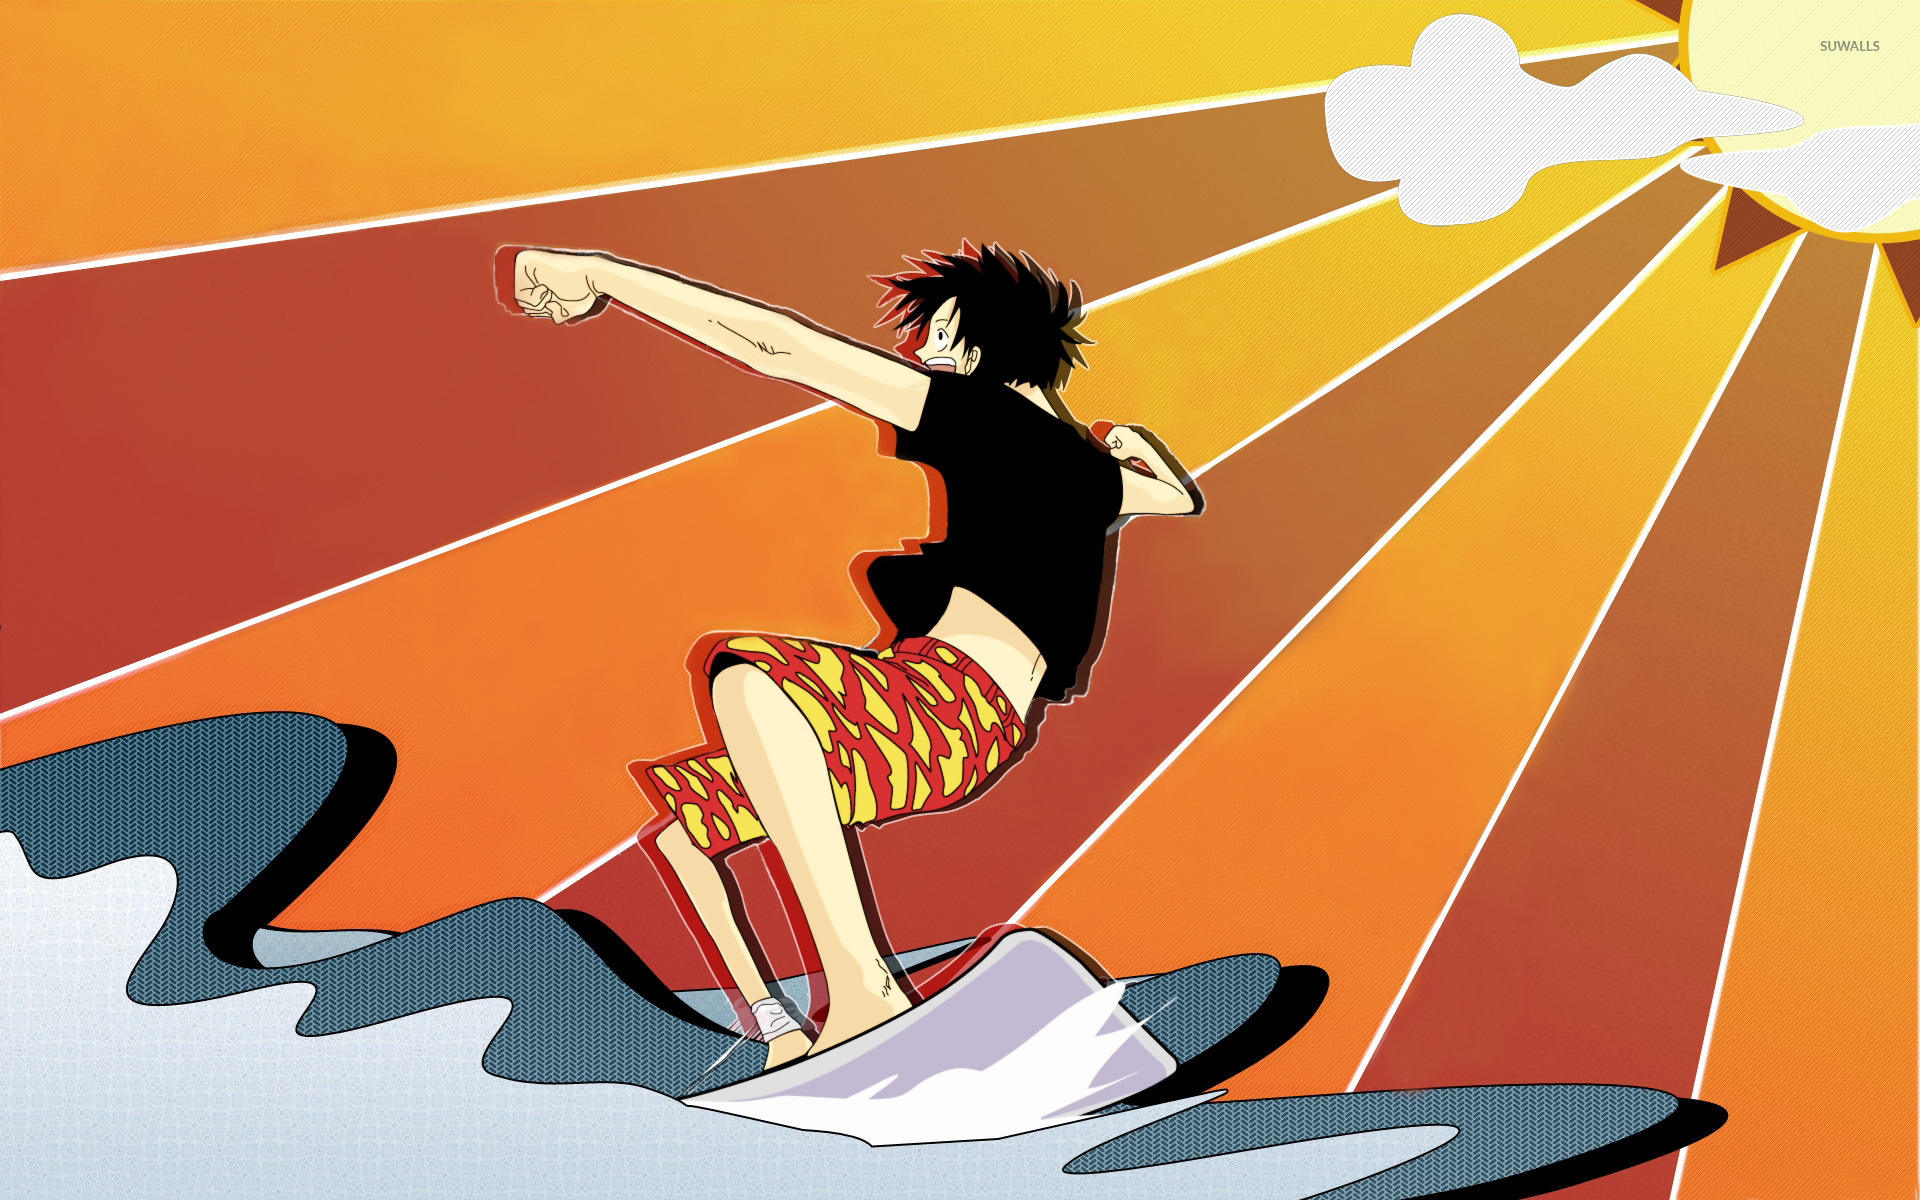 Monkey D Luffy One Piece 7 Wallpaper Anime Wallpapers